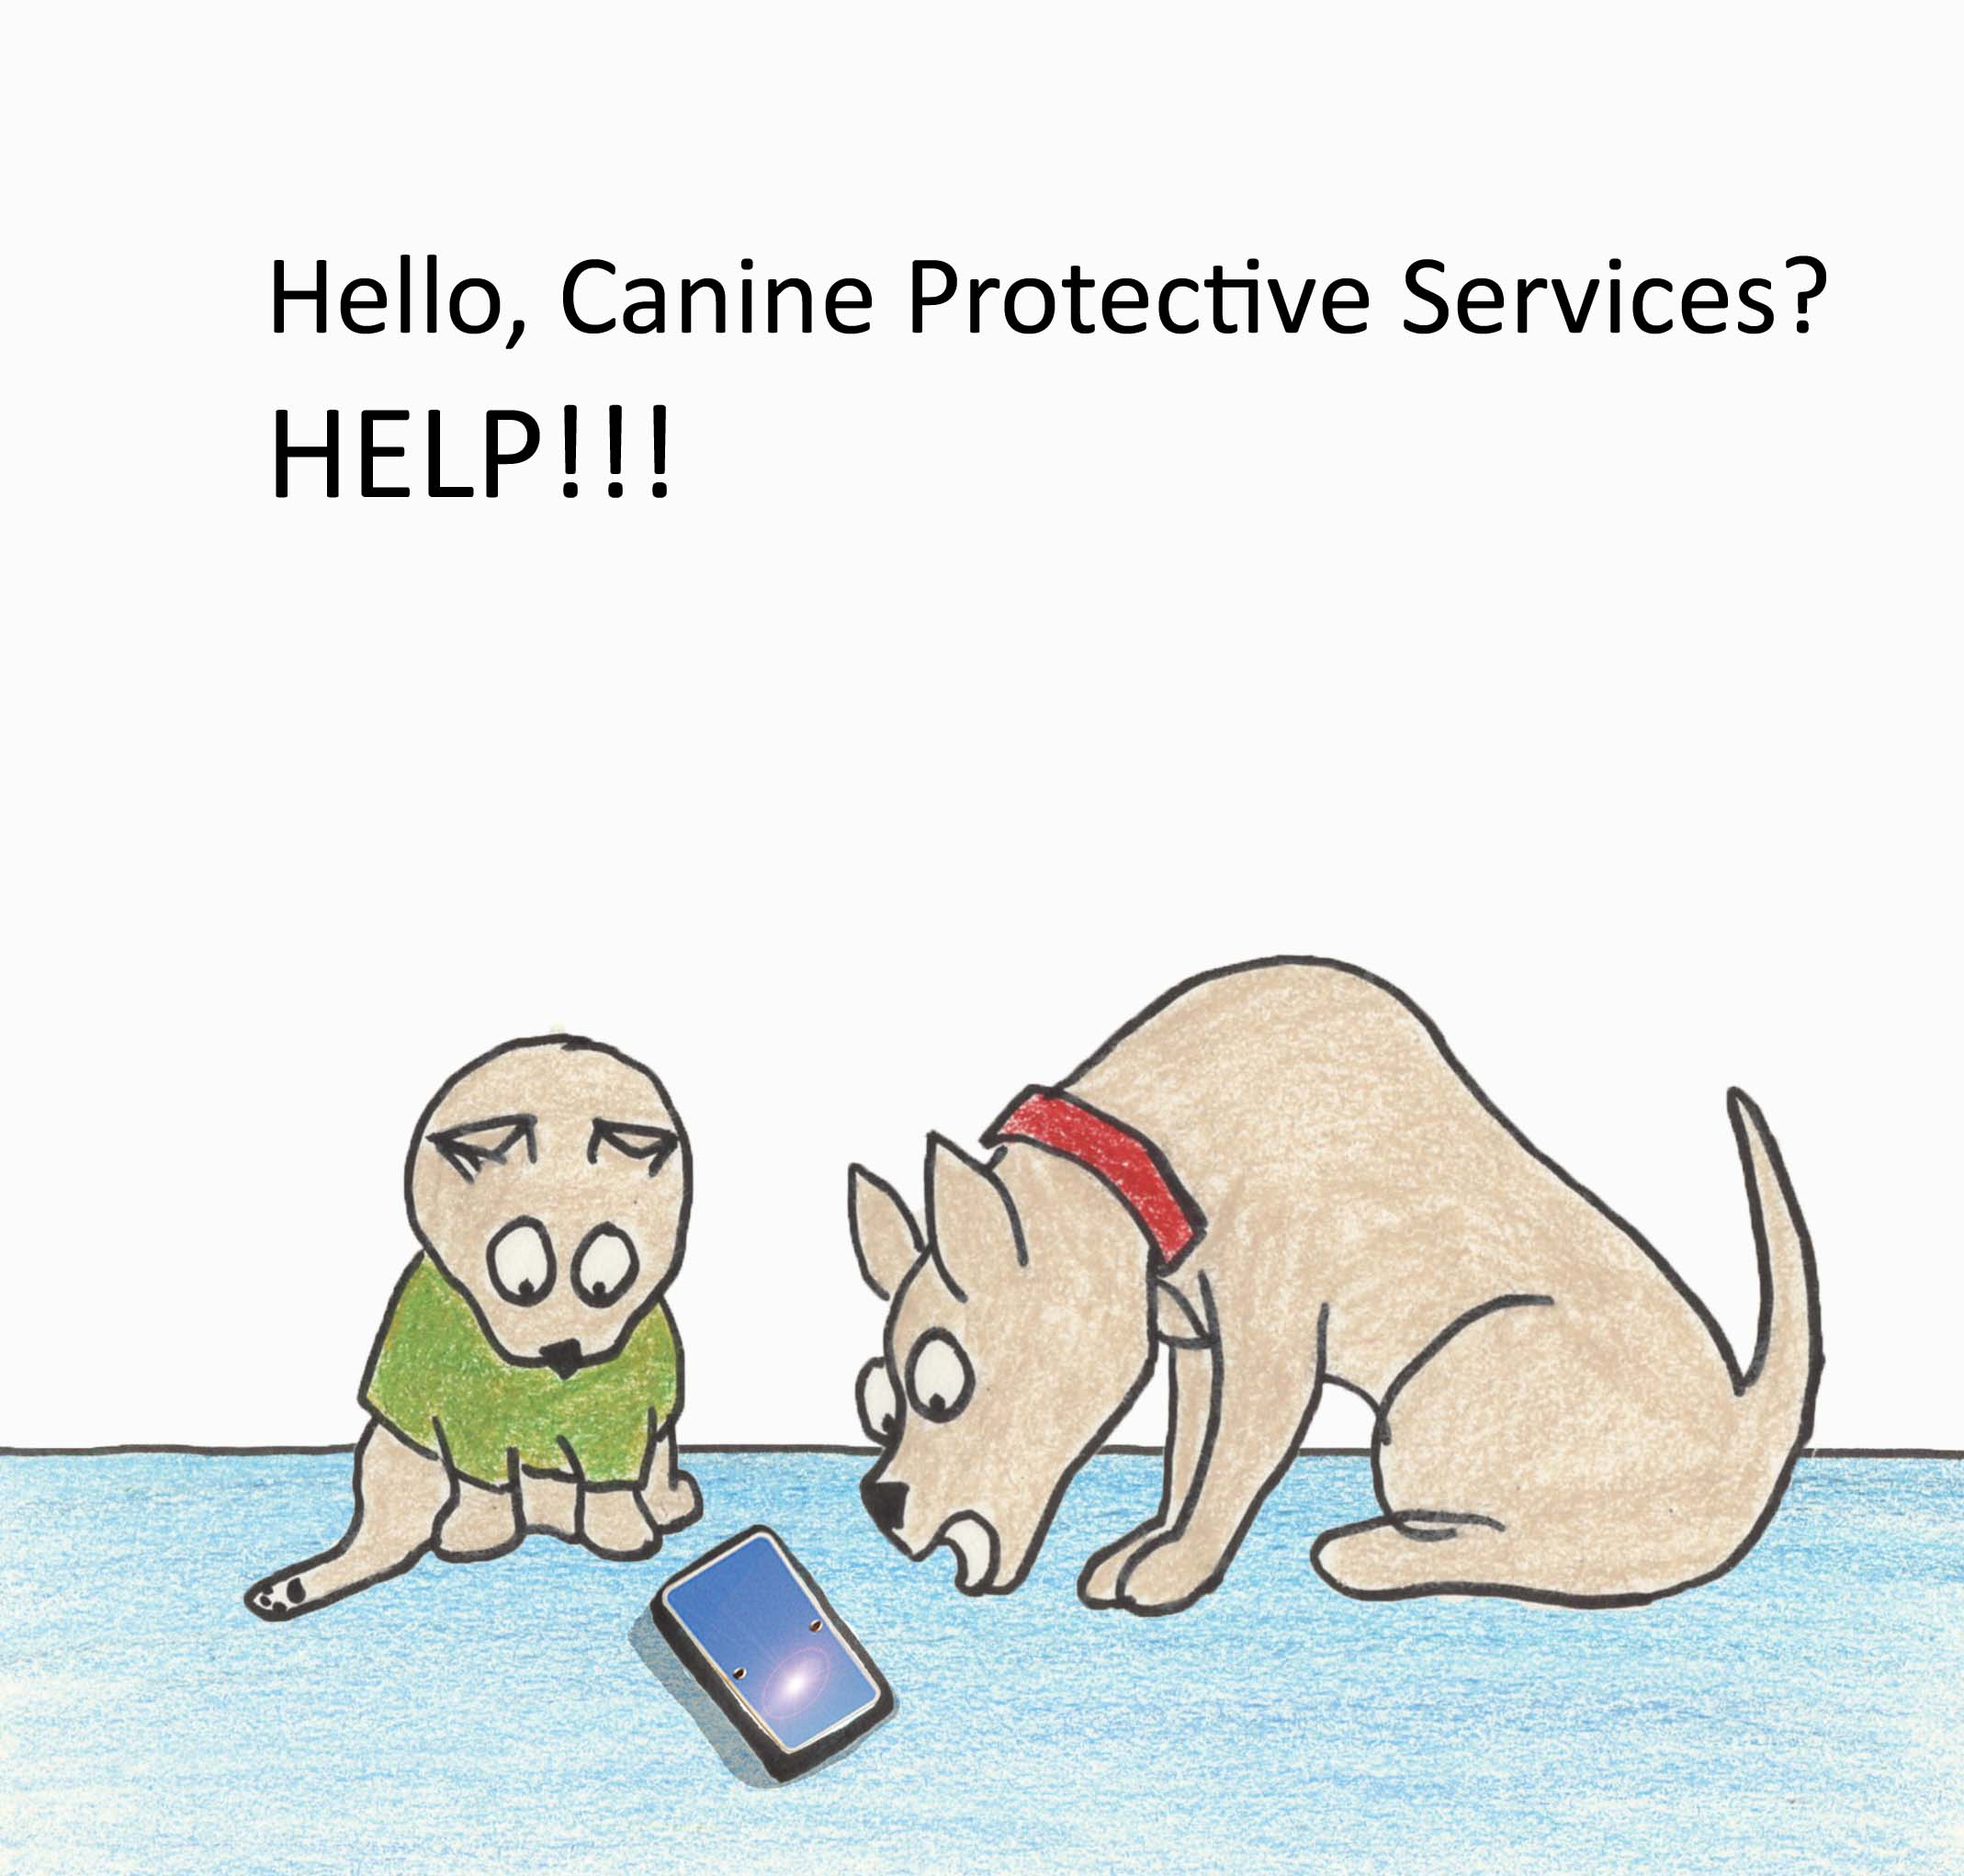 hello, Canine Protective Services? HELP!!!